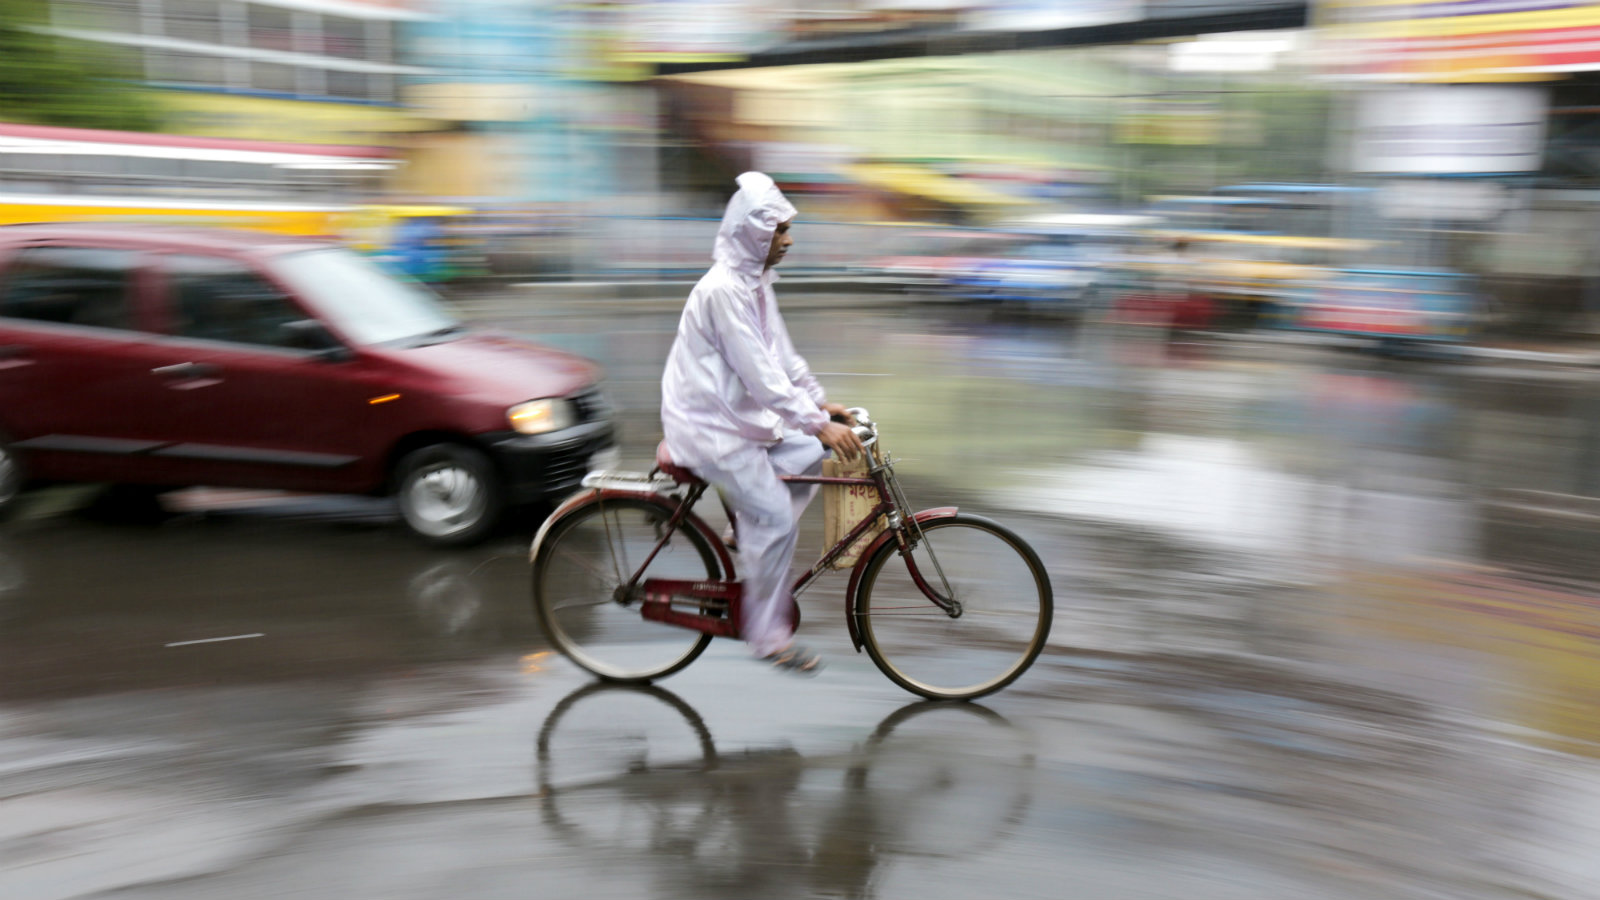 An Indian commuters rides a bicycle during monsoon showers in Calcutta, eastern India, 22 August 2016. A monsoon shower hit the city and disrupted daily life. The Indian monsoon season usually takes place between May and September.